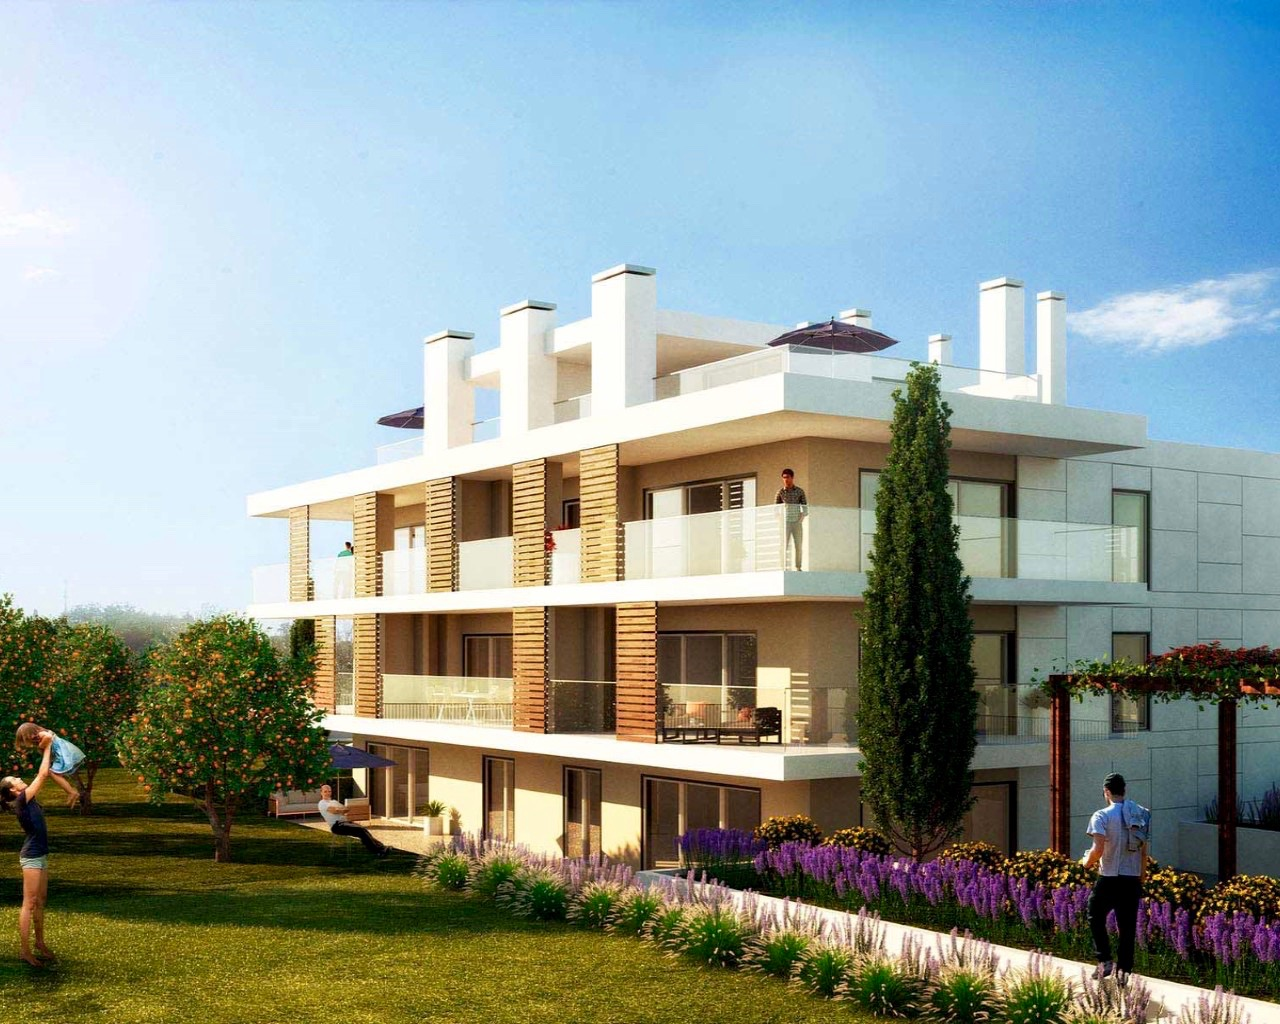 Fabulous 2 bedroom apartment in Albufeira  - Apartment in a prestigious complex with pool Brand new 2 bedroom